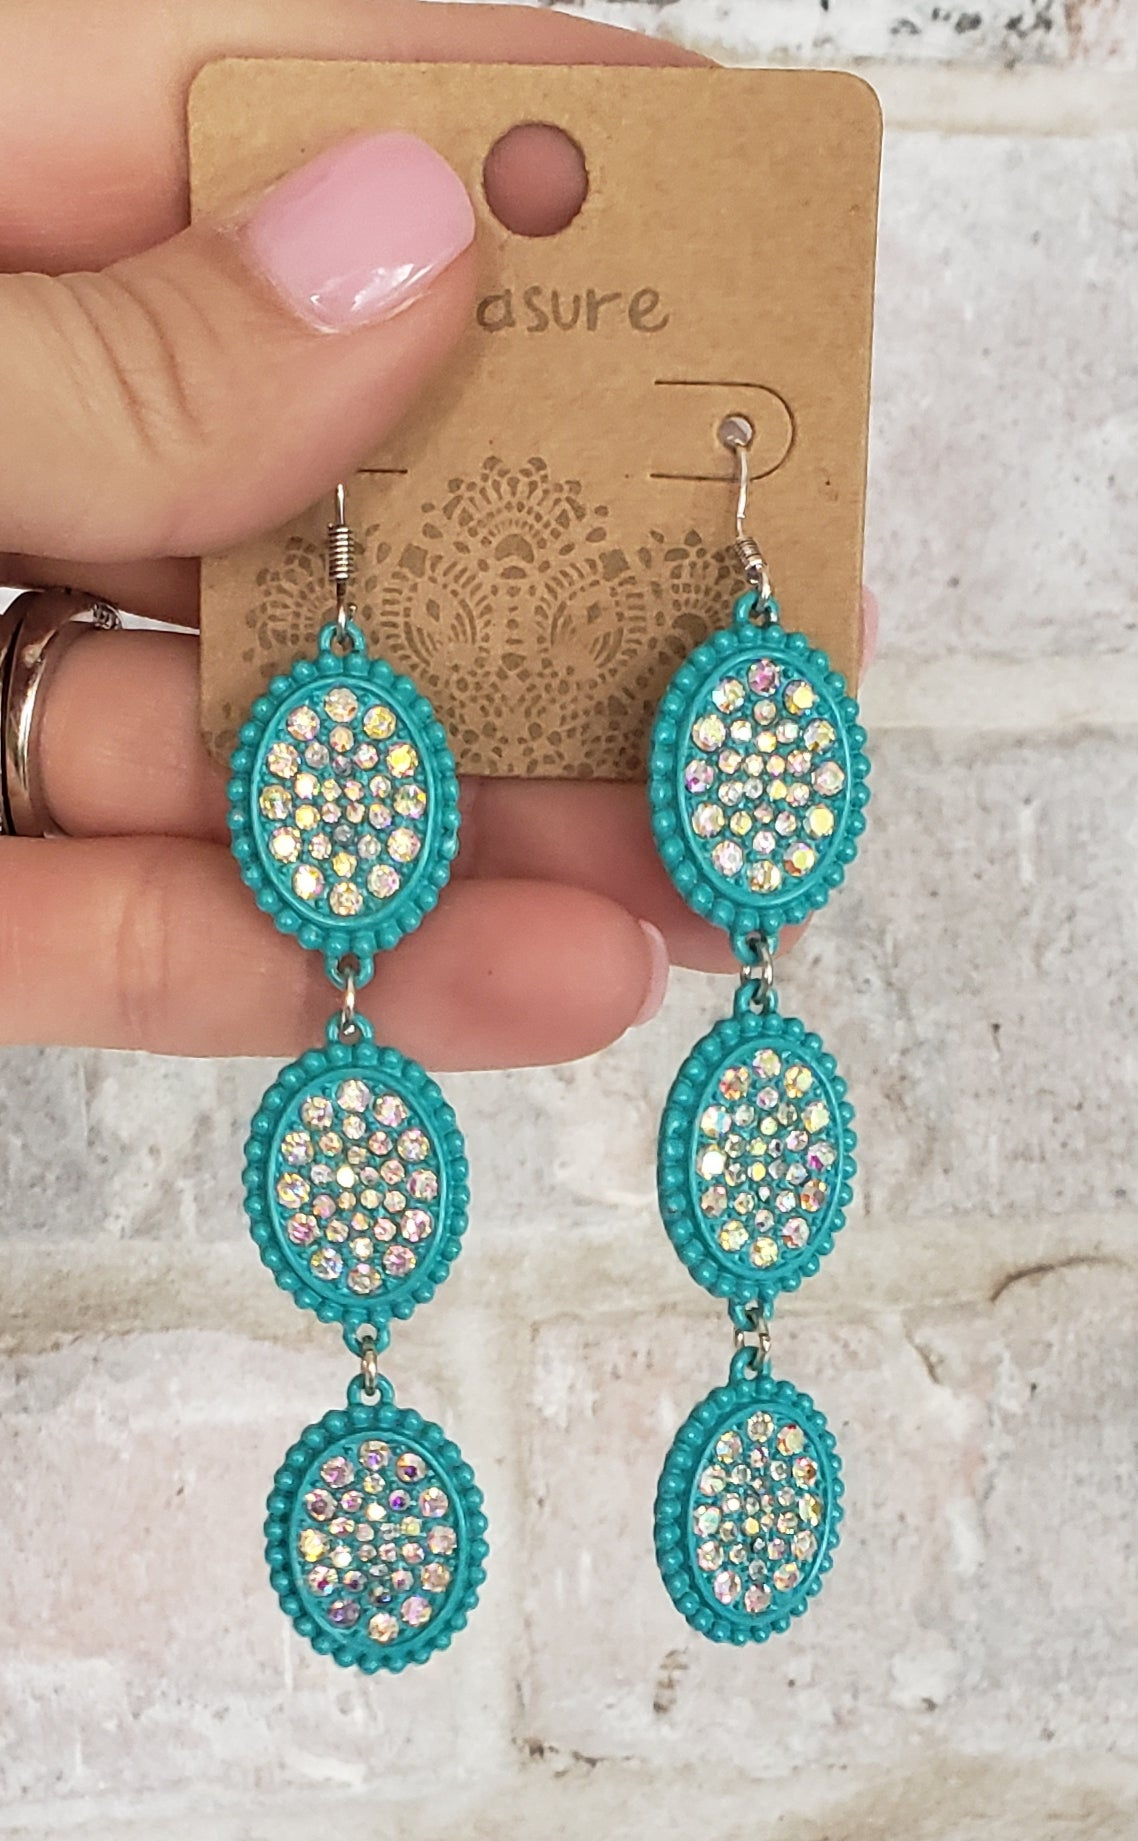 Turquoise triple oval AB earrings